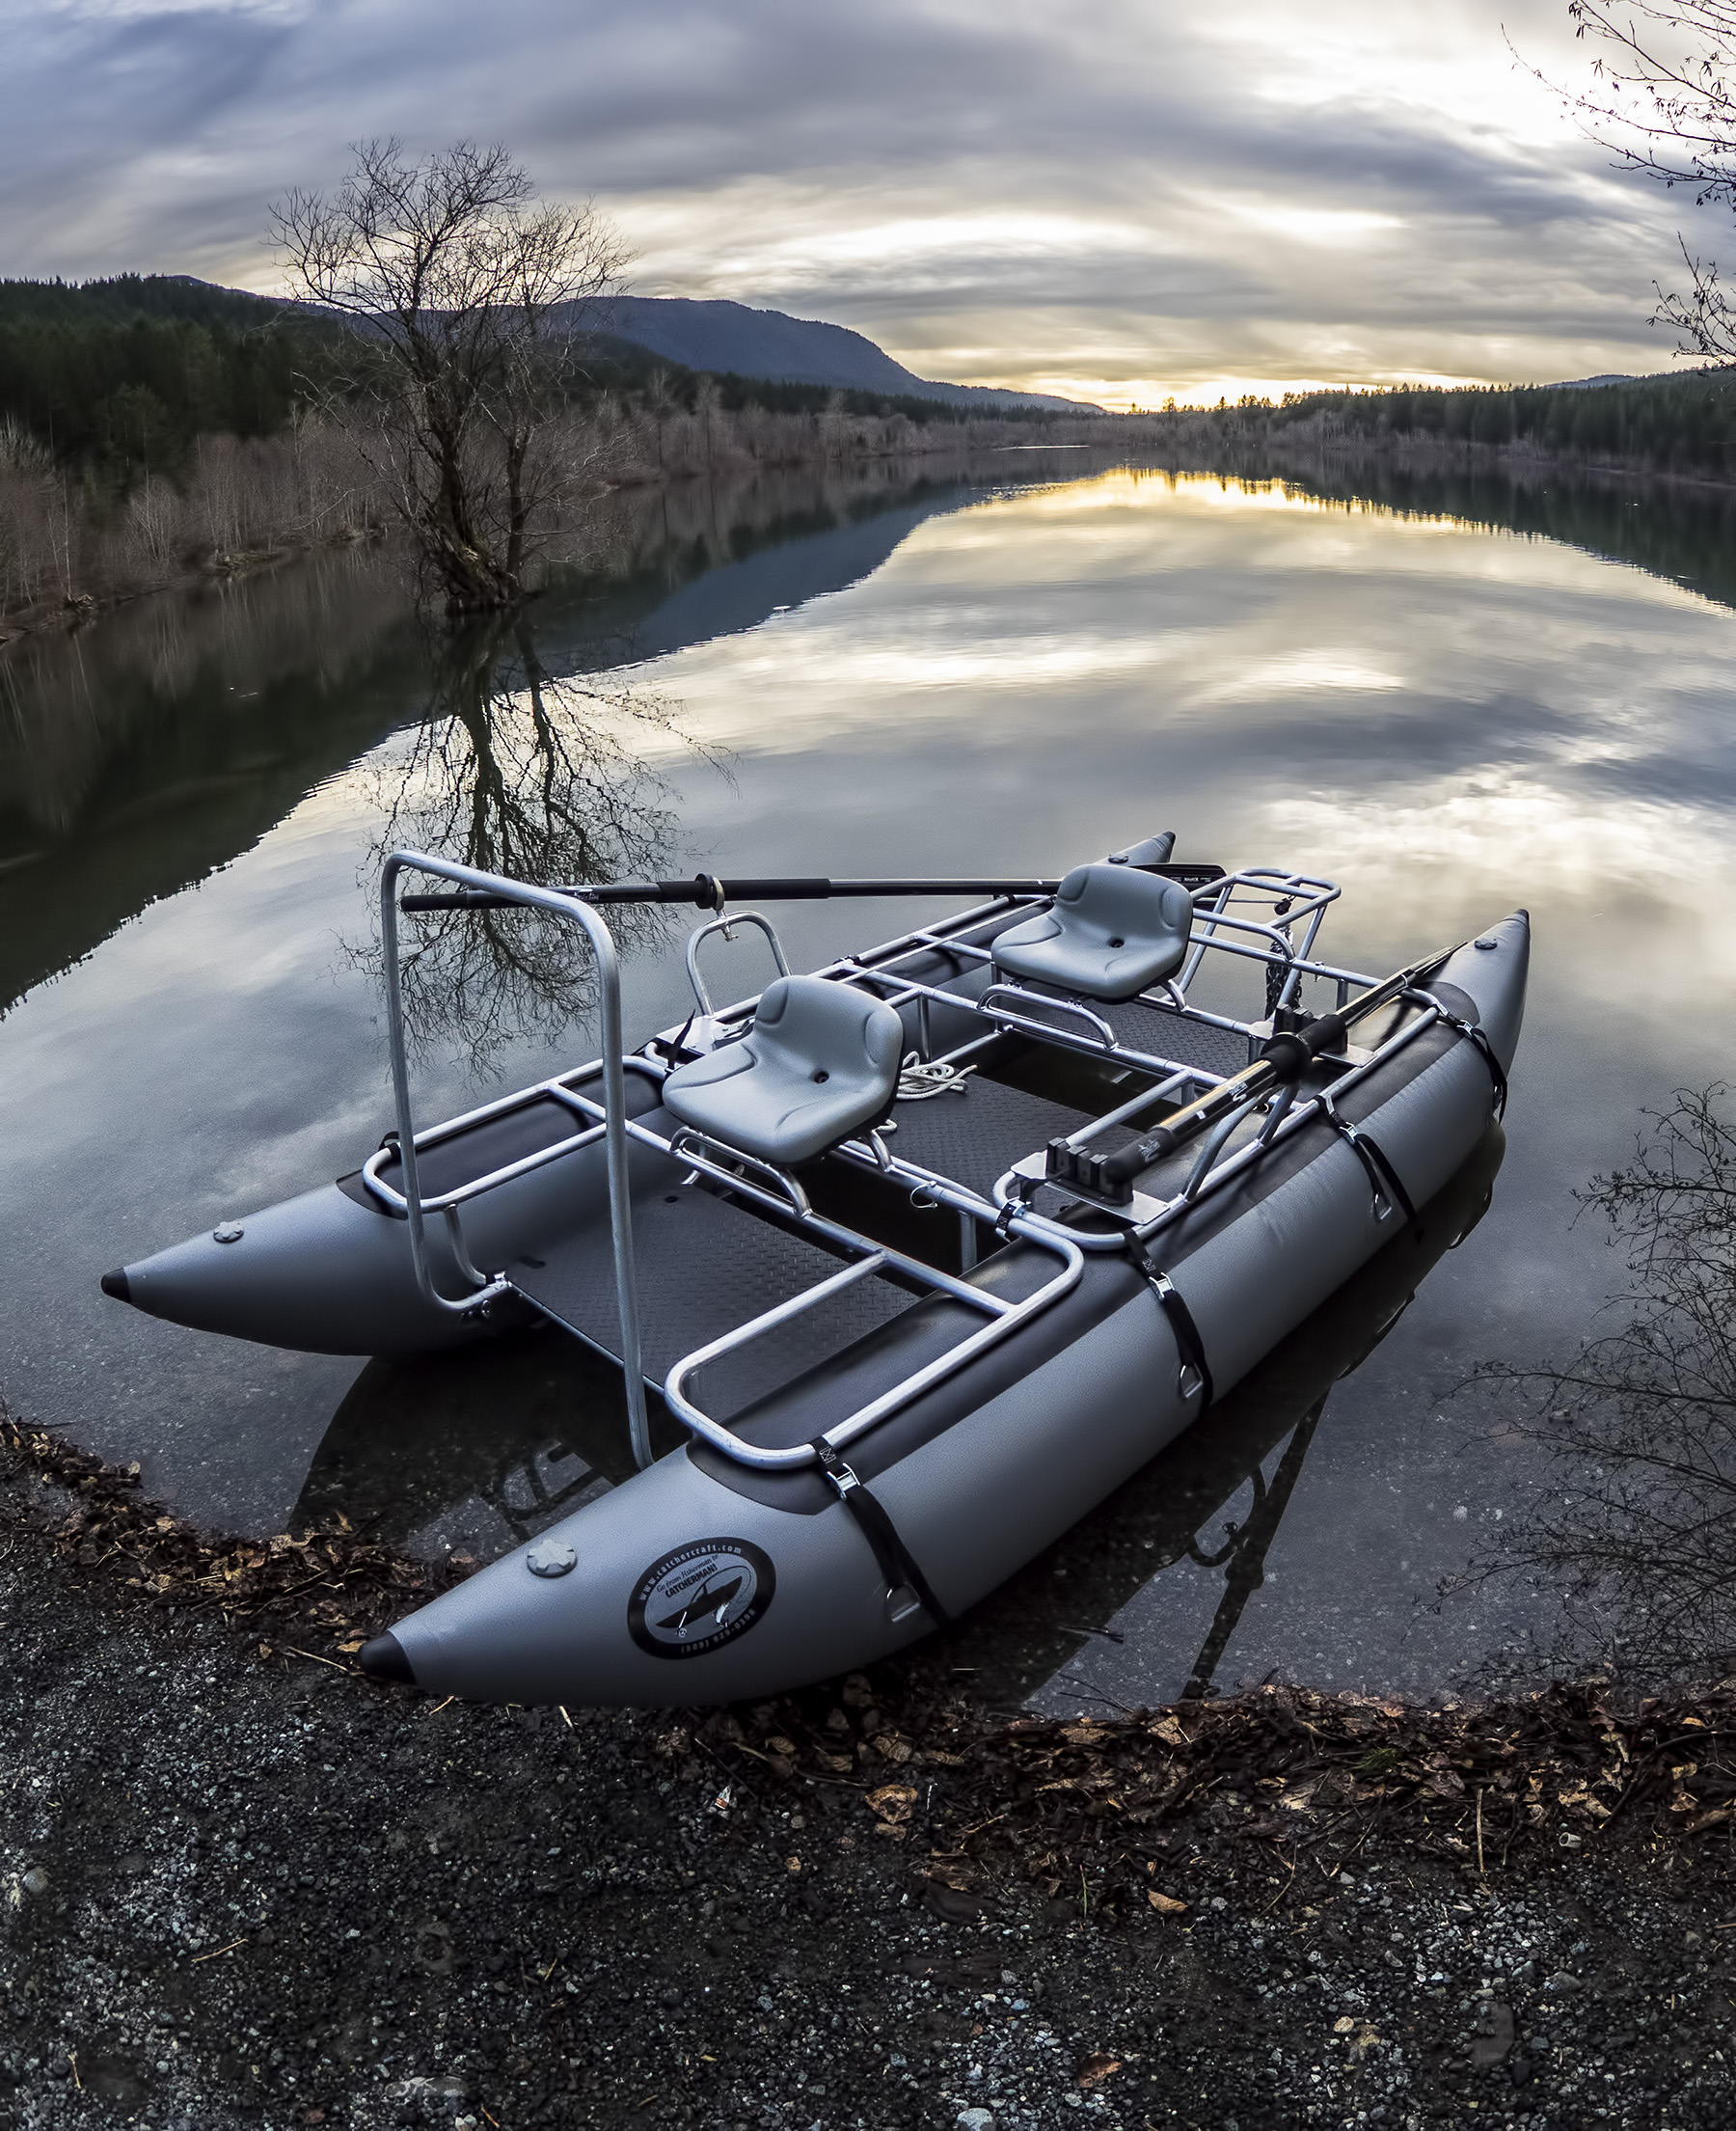 2-Salt Steelhead package with optional deluxe anchor system and rod holders, ready for the magical time of last light.